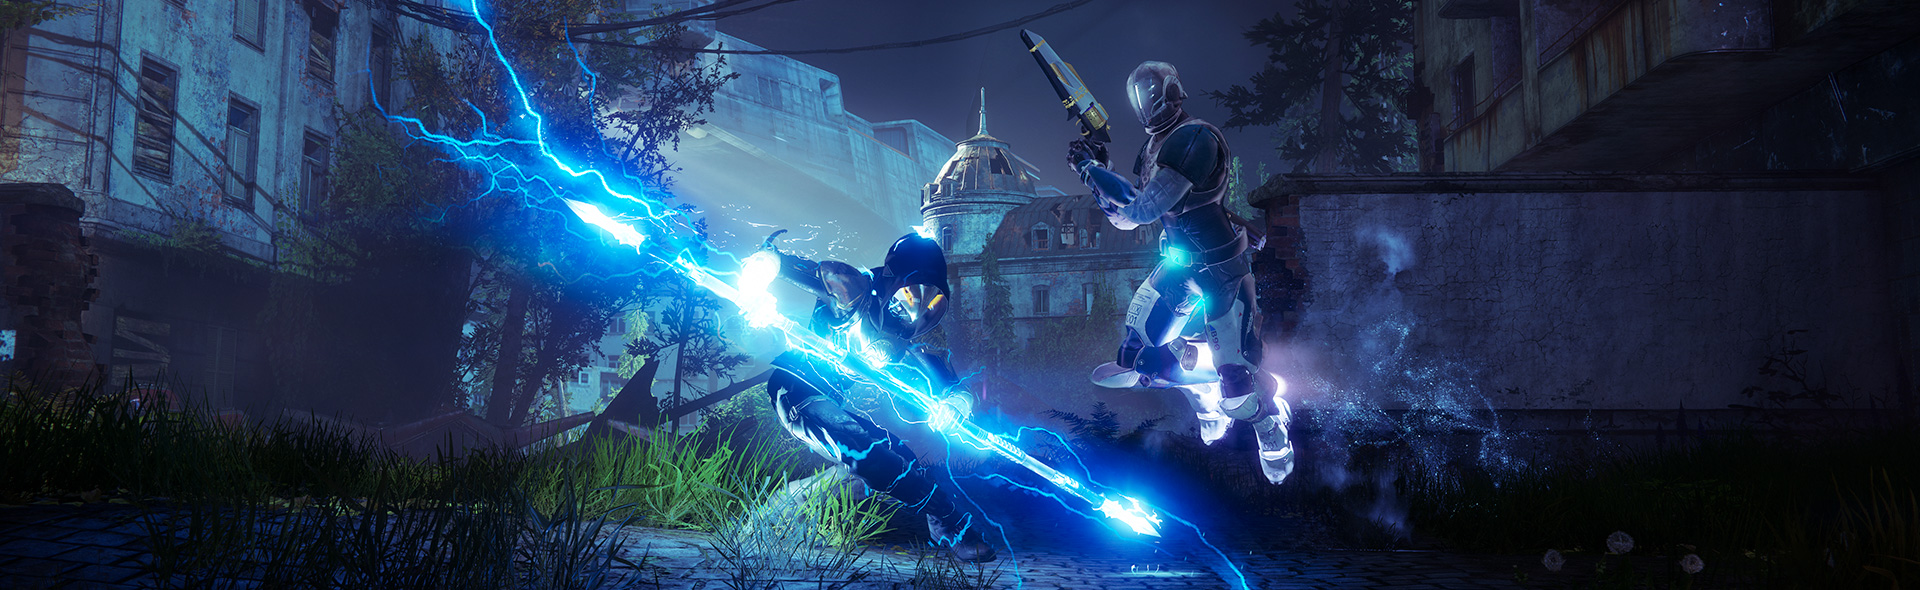 This Week At Bungie –3/29/2018 > News   Bungie net